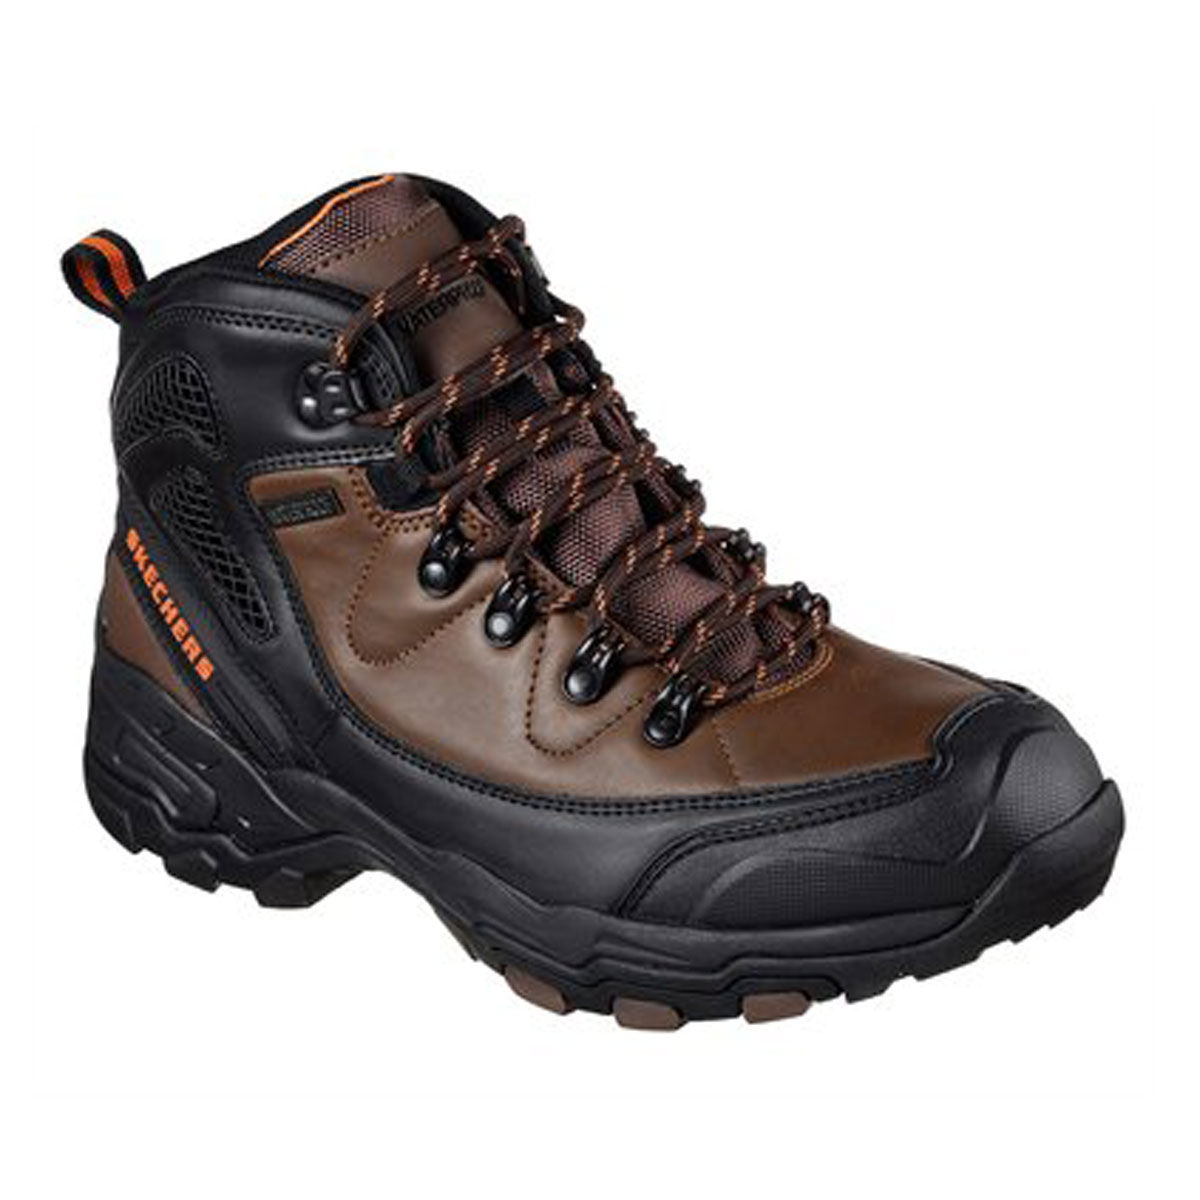 Skechers Relaxed Fit Aster Mens Hiker Boot